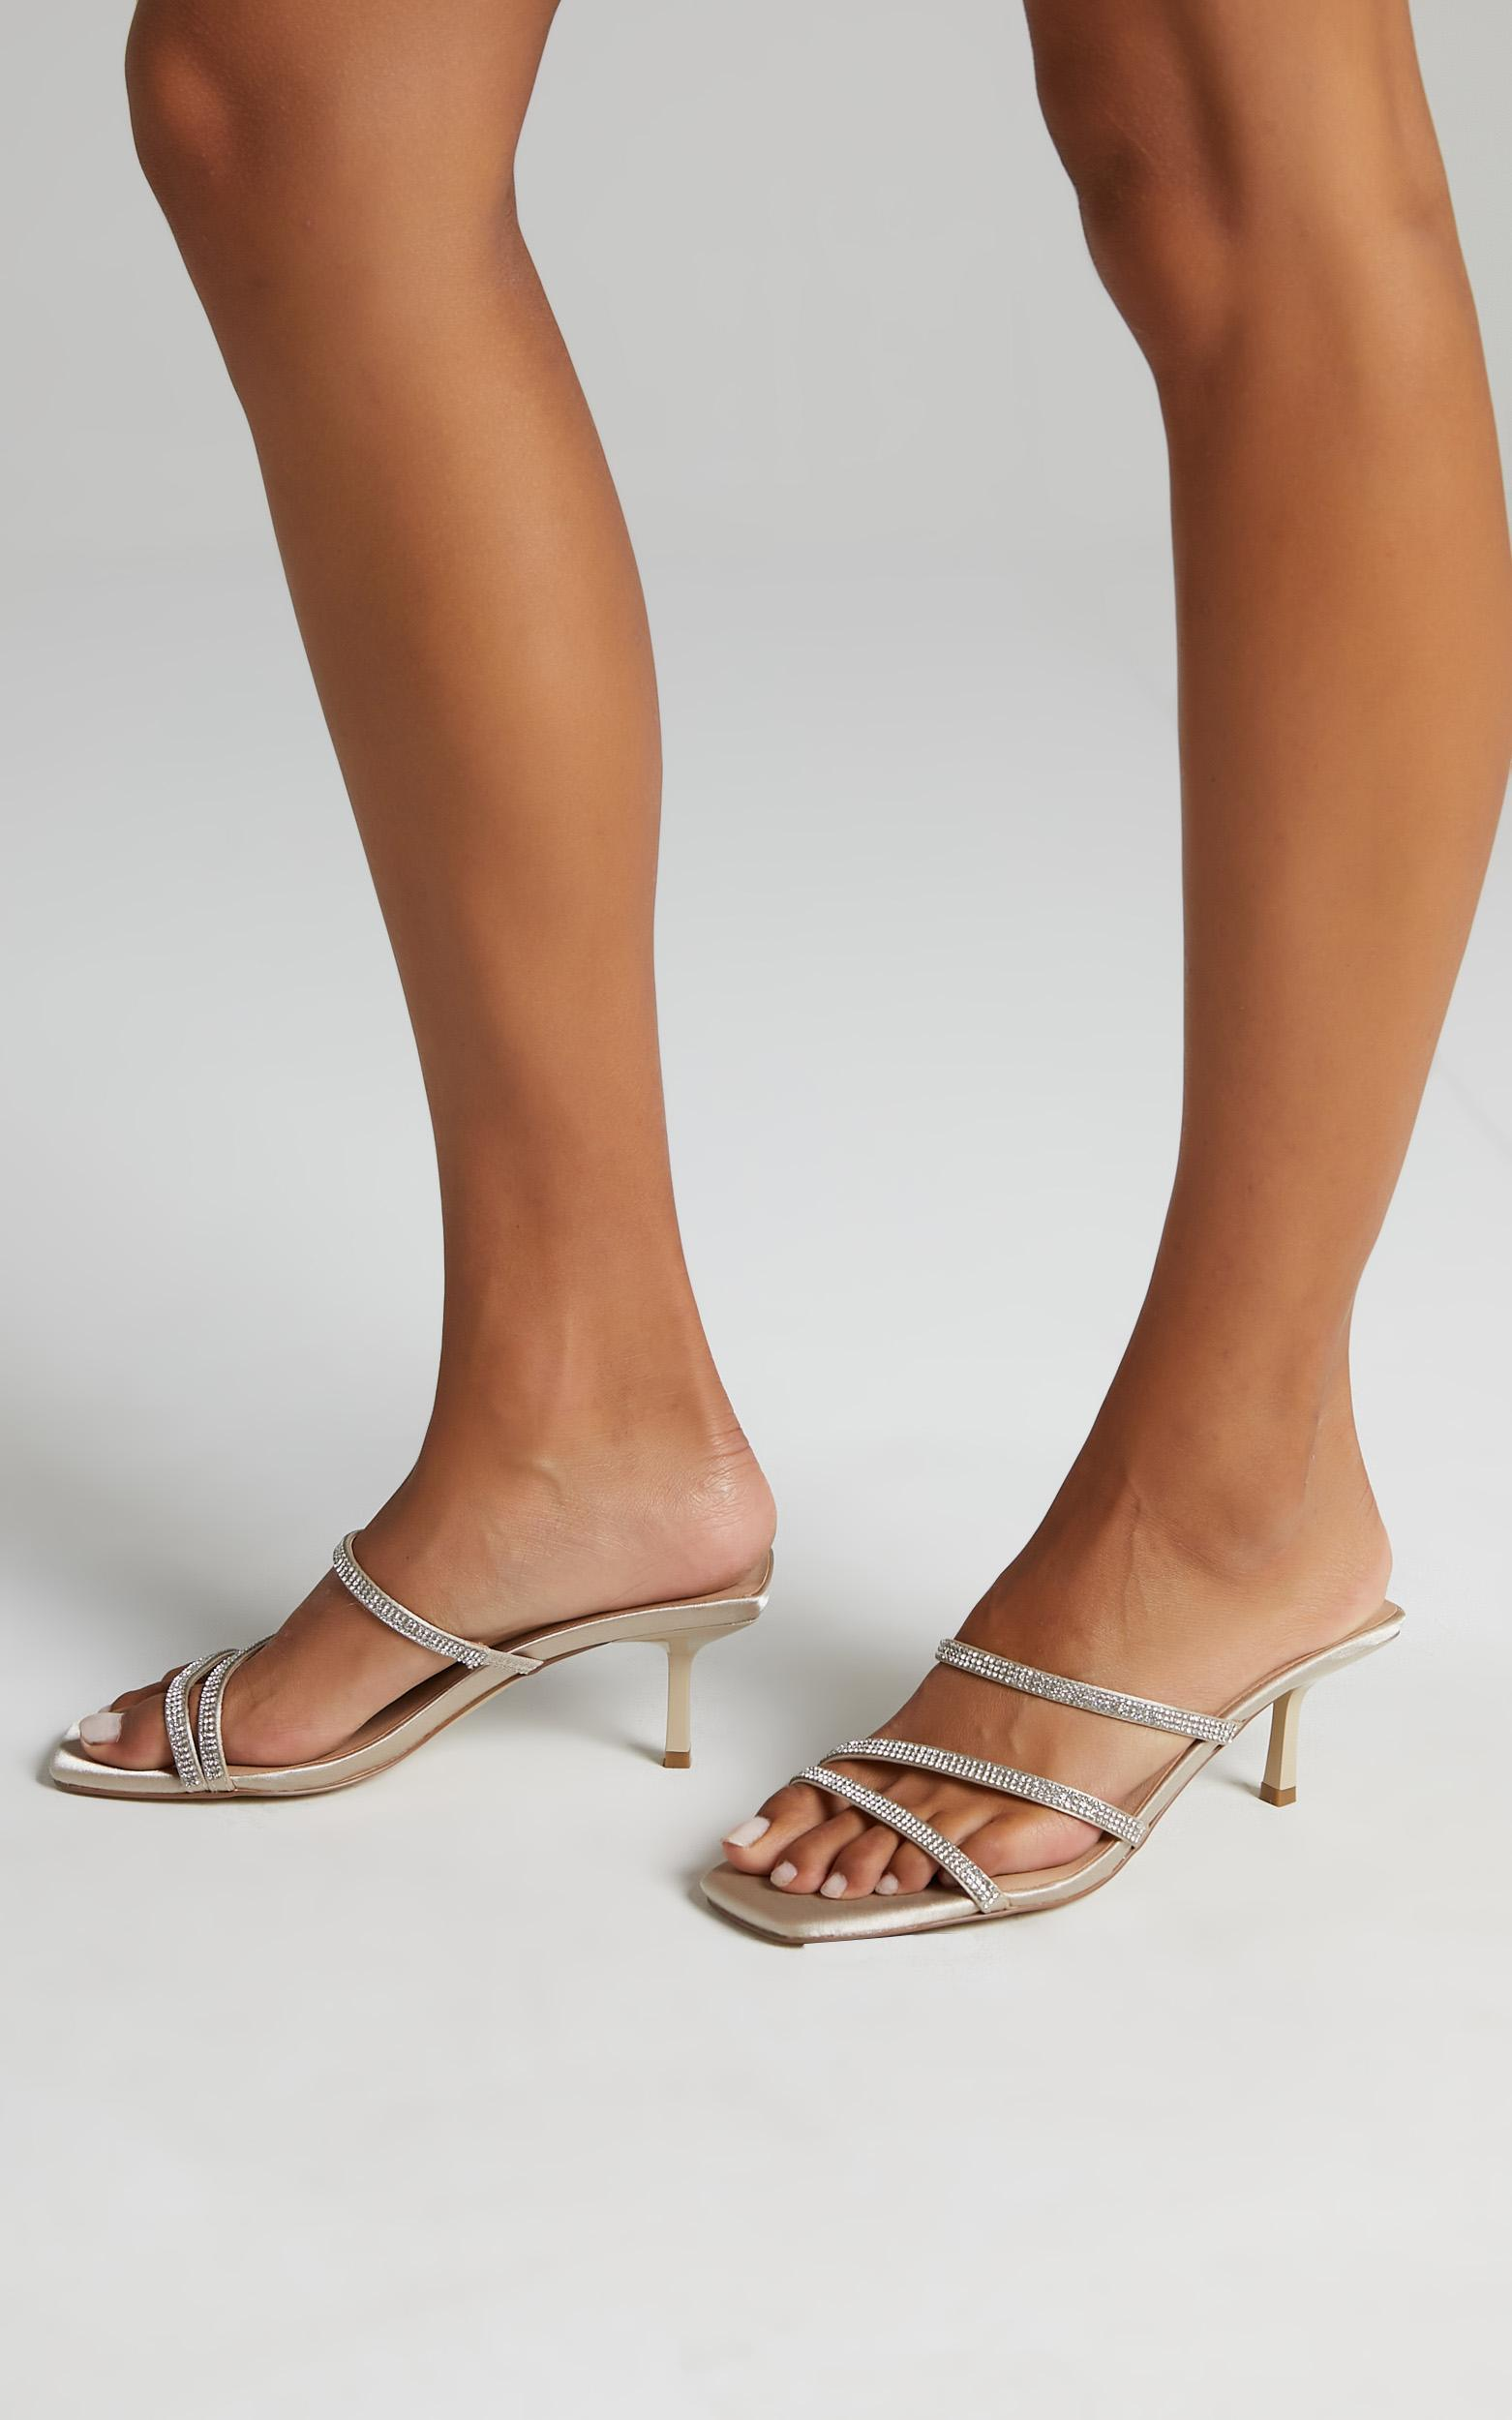 Therapy - Dazzle Heels in Champagne Satin - 05, WHT2, hi-res image number null